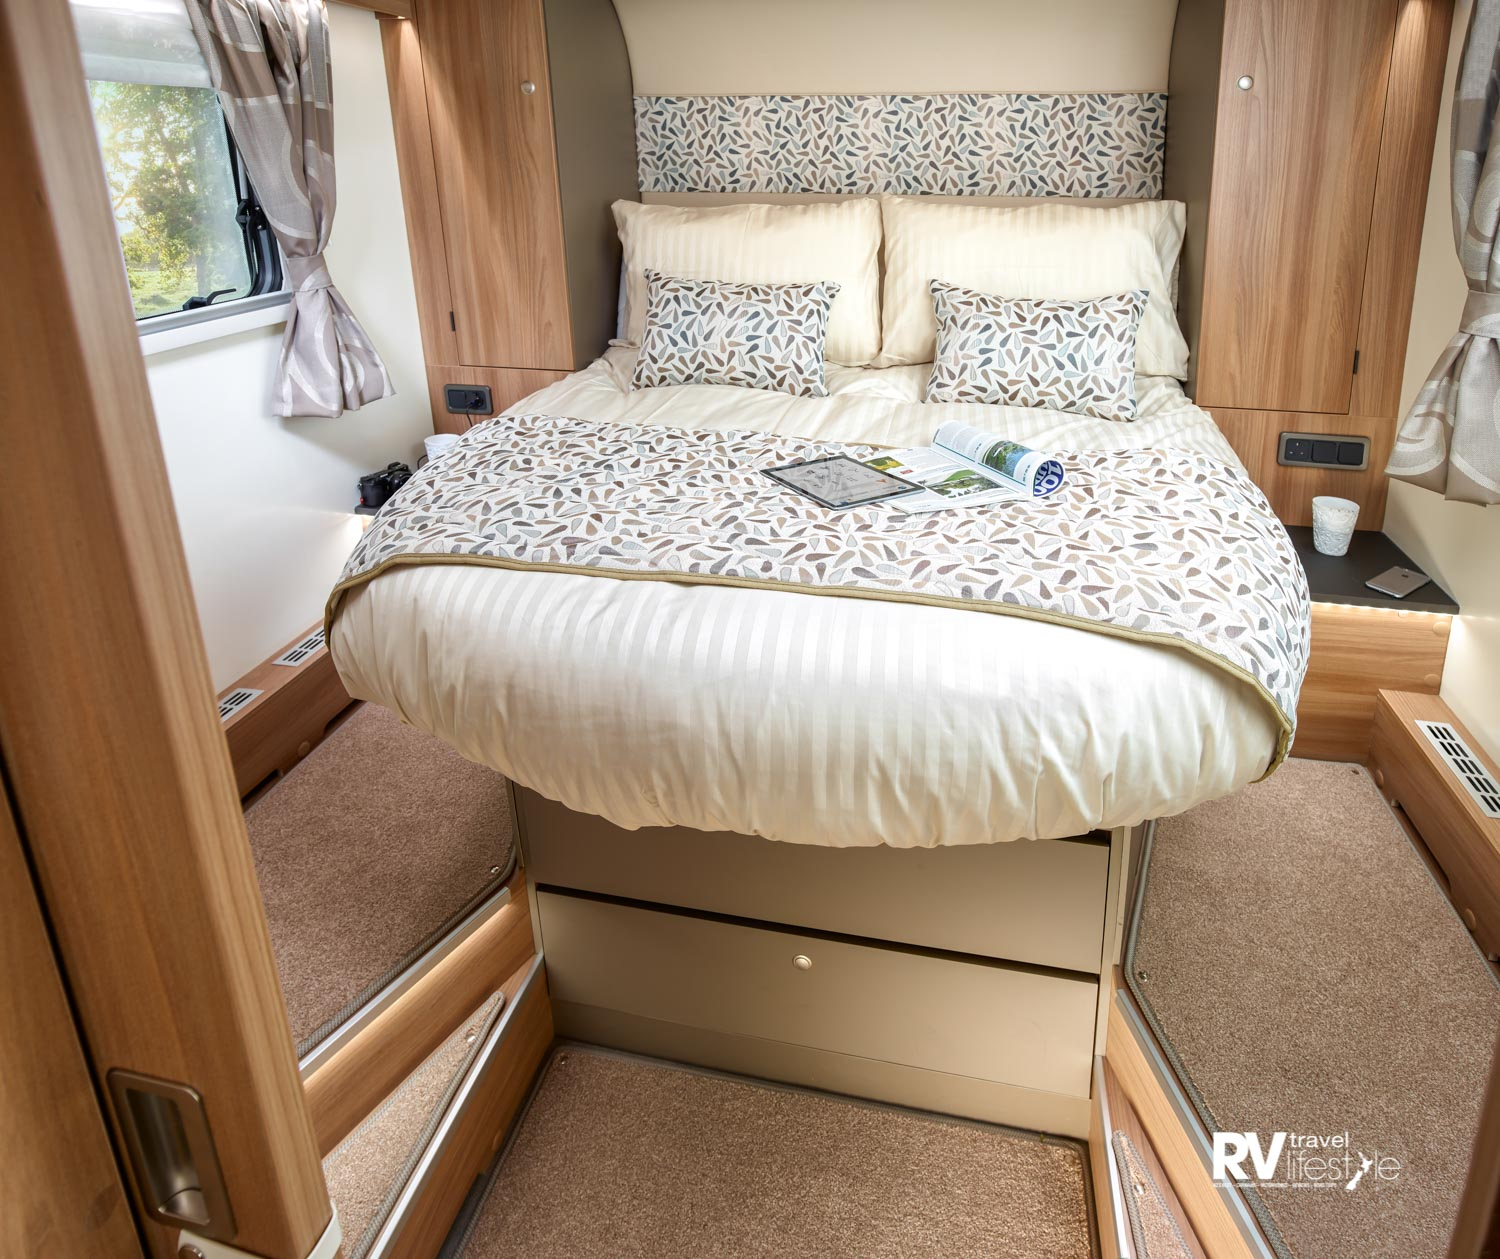 Bailey Autograph 79-4 model has the rear bedroom with island bed, drawer storage underneath, steps each side, central heating vents, power poiints, wardrobes on each side and a nice bedhead finish